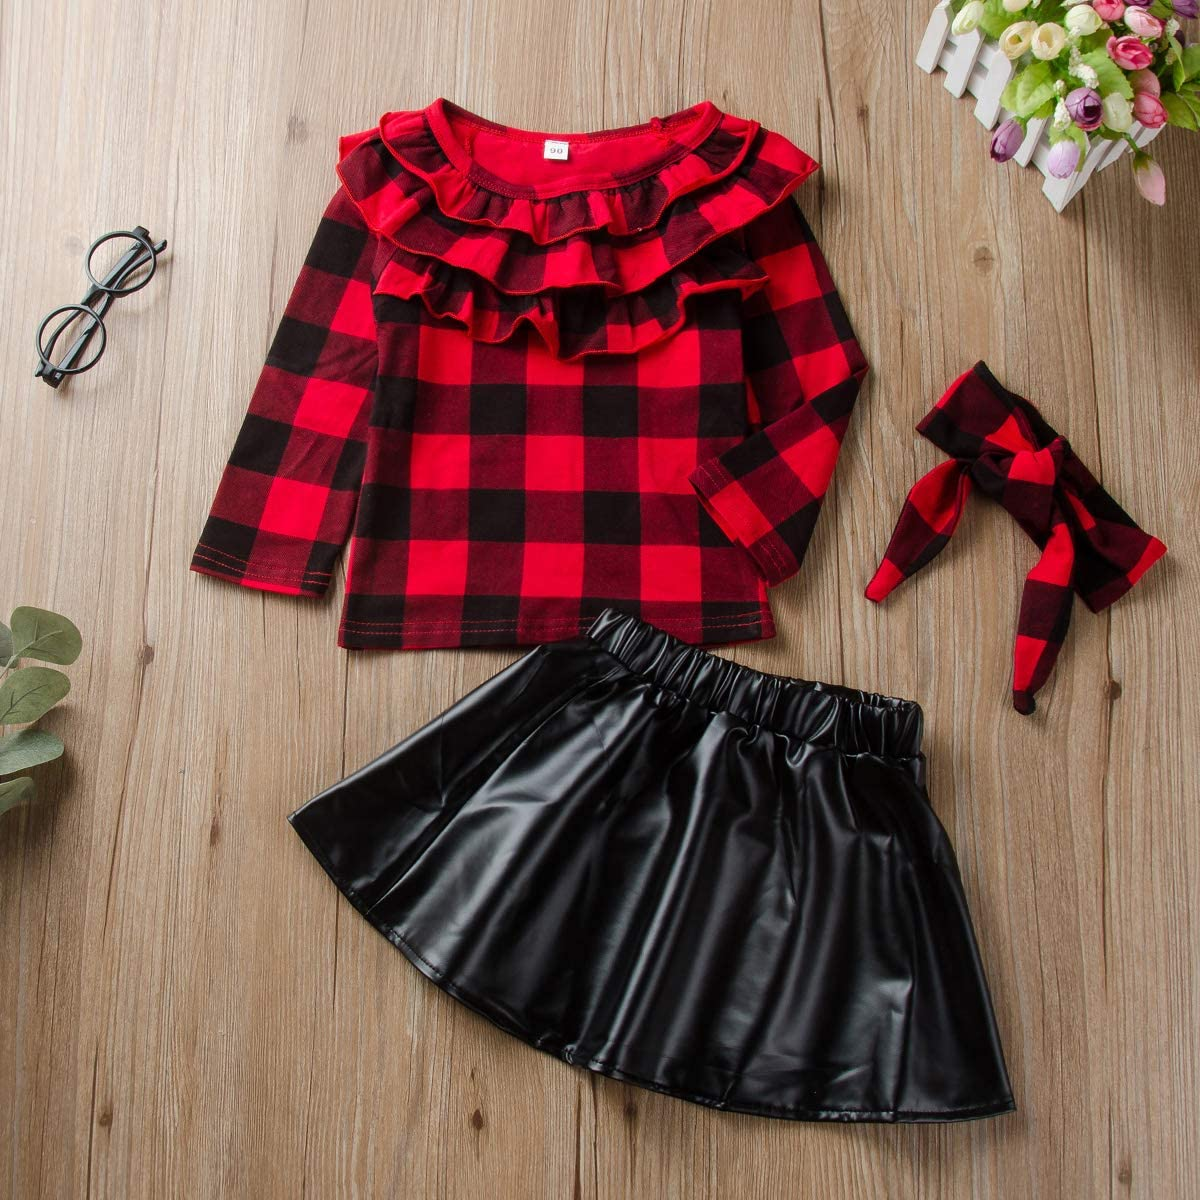 DaMohony Kids Newborn Baby Girls Skirt Outfit Plaid Top Shirt Leather Skirt Headband 3Pcs Kids Clothes Set for 1-6 Years